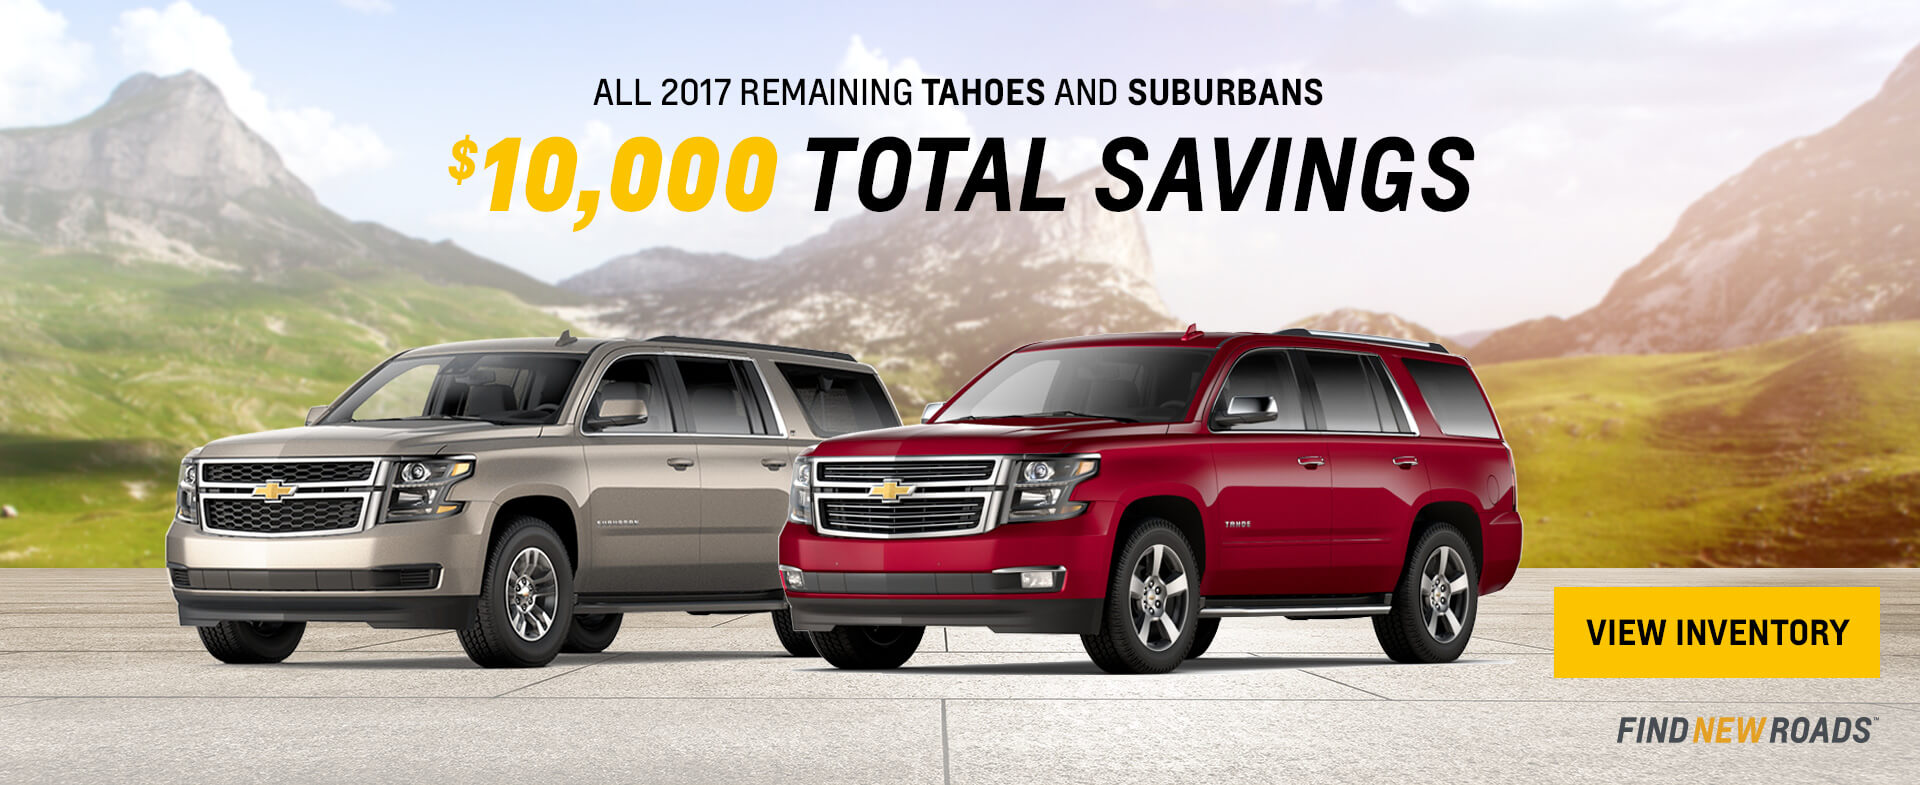 Tahoe Suburban $10000 Savings